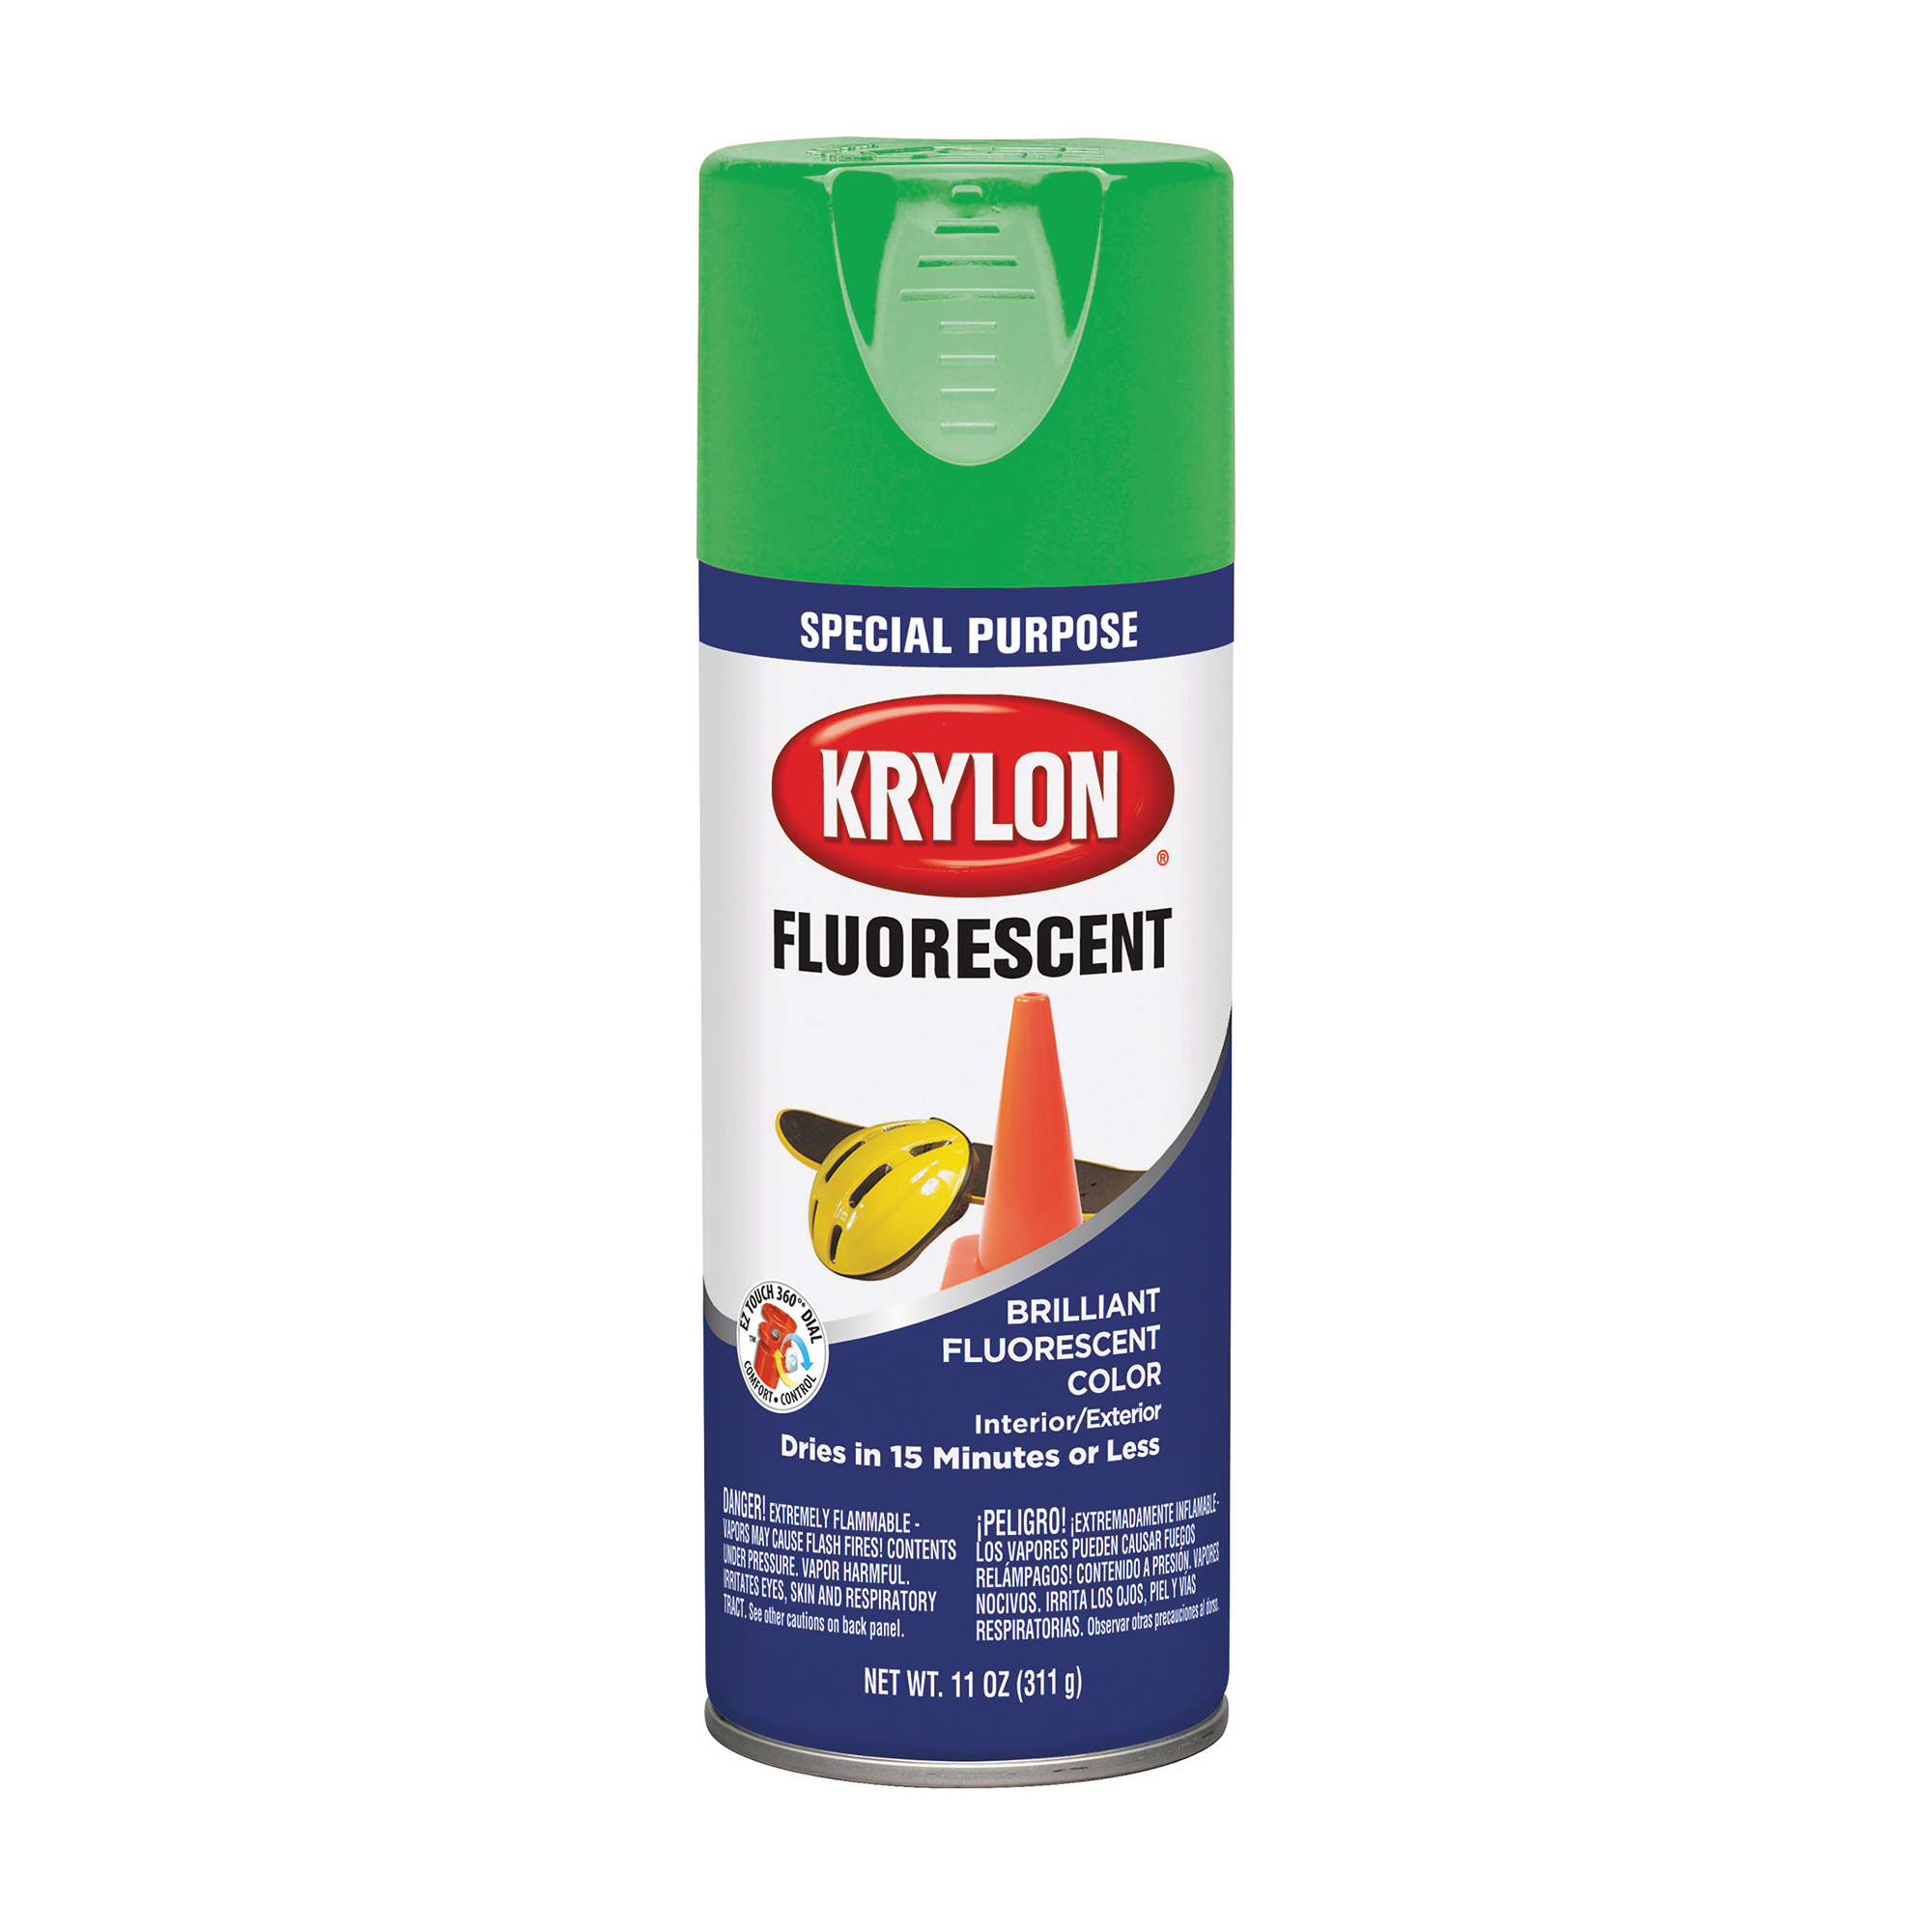 Krylon Fluorescent Paint Green, 11 oz